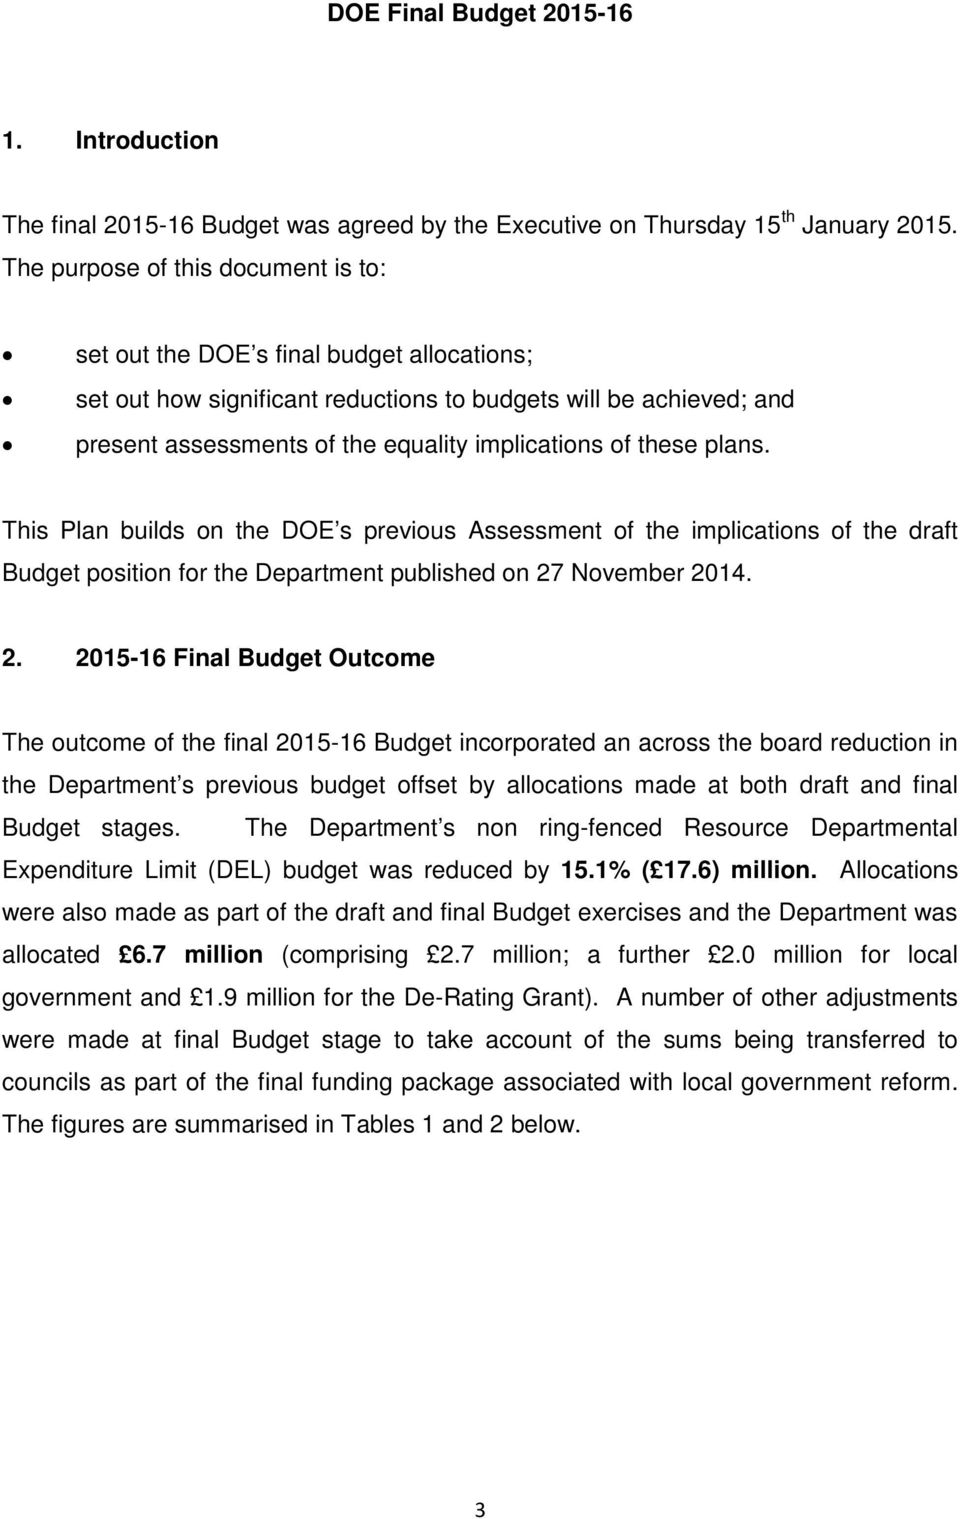 these plans. This Plan builds on the DOE s previous Assessment of the implications of the draft Budget position for the Department published on 27